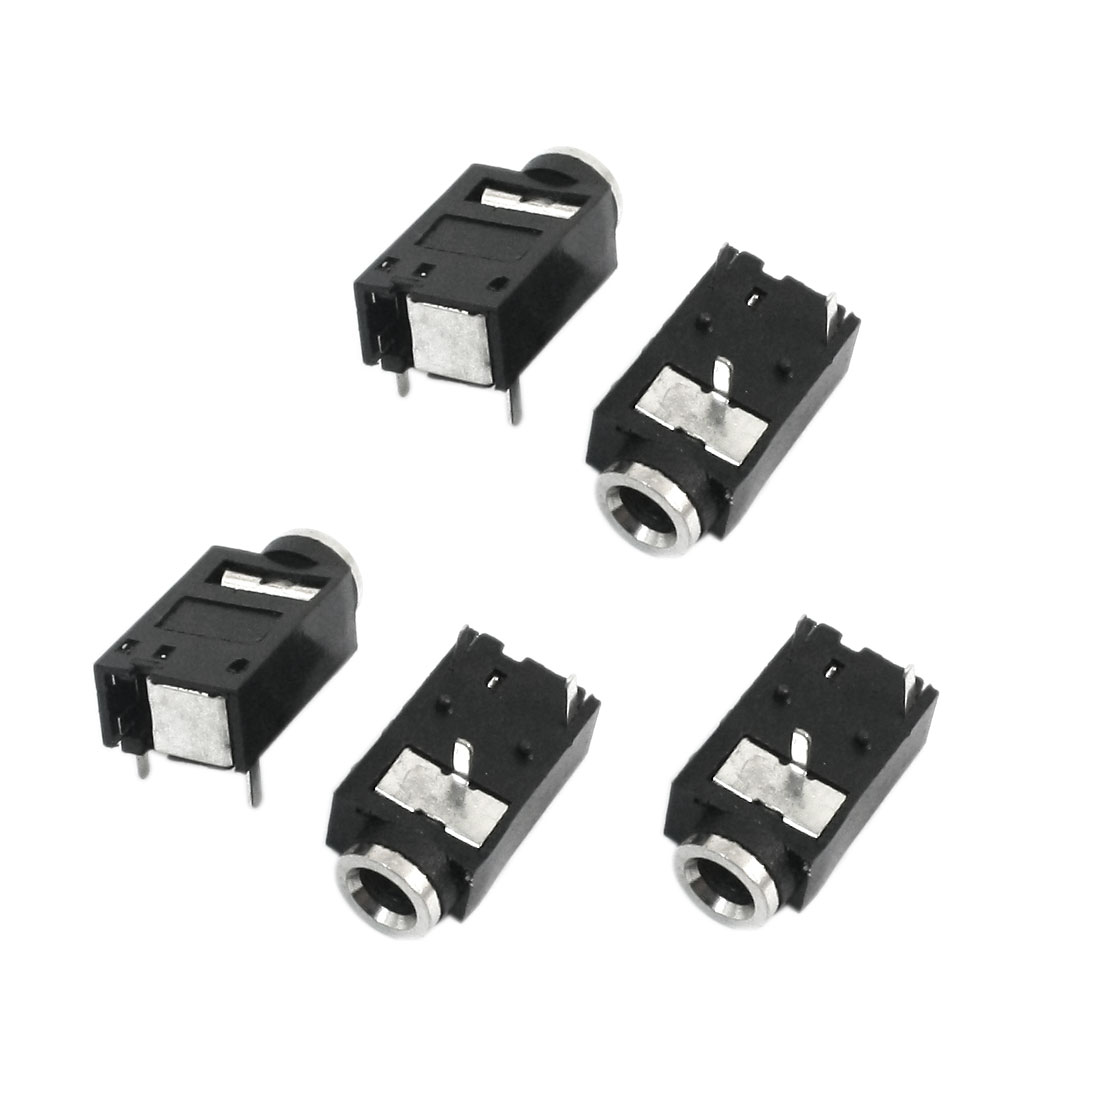 5Pcs 3 Pin 3.5mm Female Audio Stereo Jacks Socket for Headphone Earphone